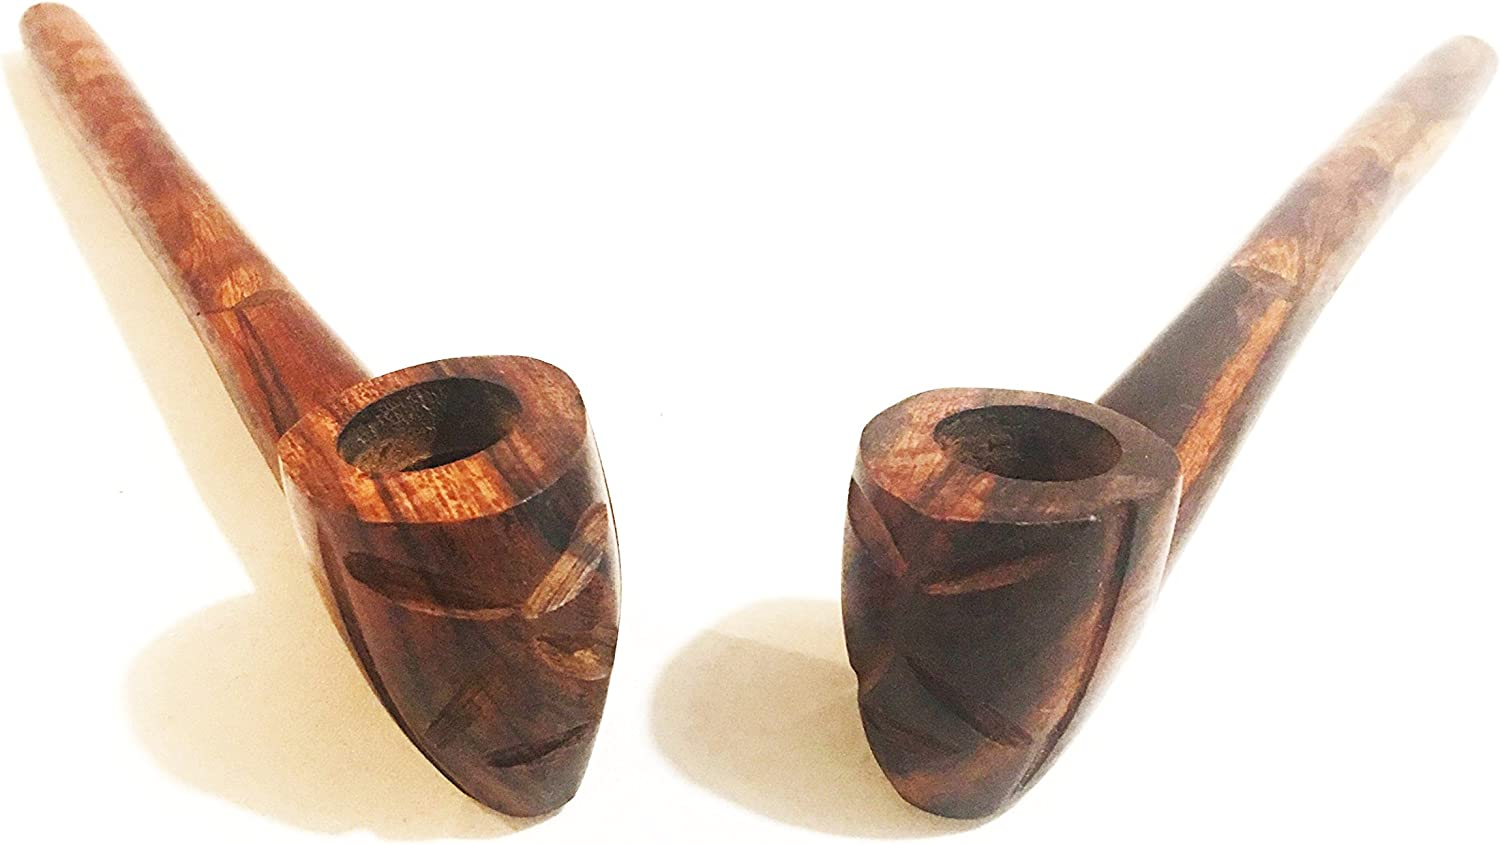 FIGURED IRONWOOD from Arizona Hand made wood small tobacco 4 pipe lotF25 beautiful unclejohnspipe Large Suction Hole prevents gunking